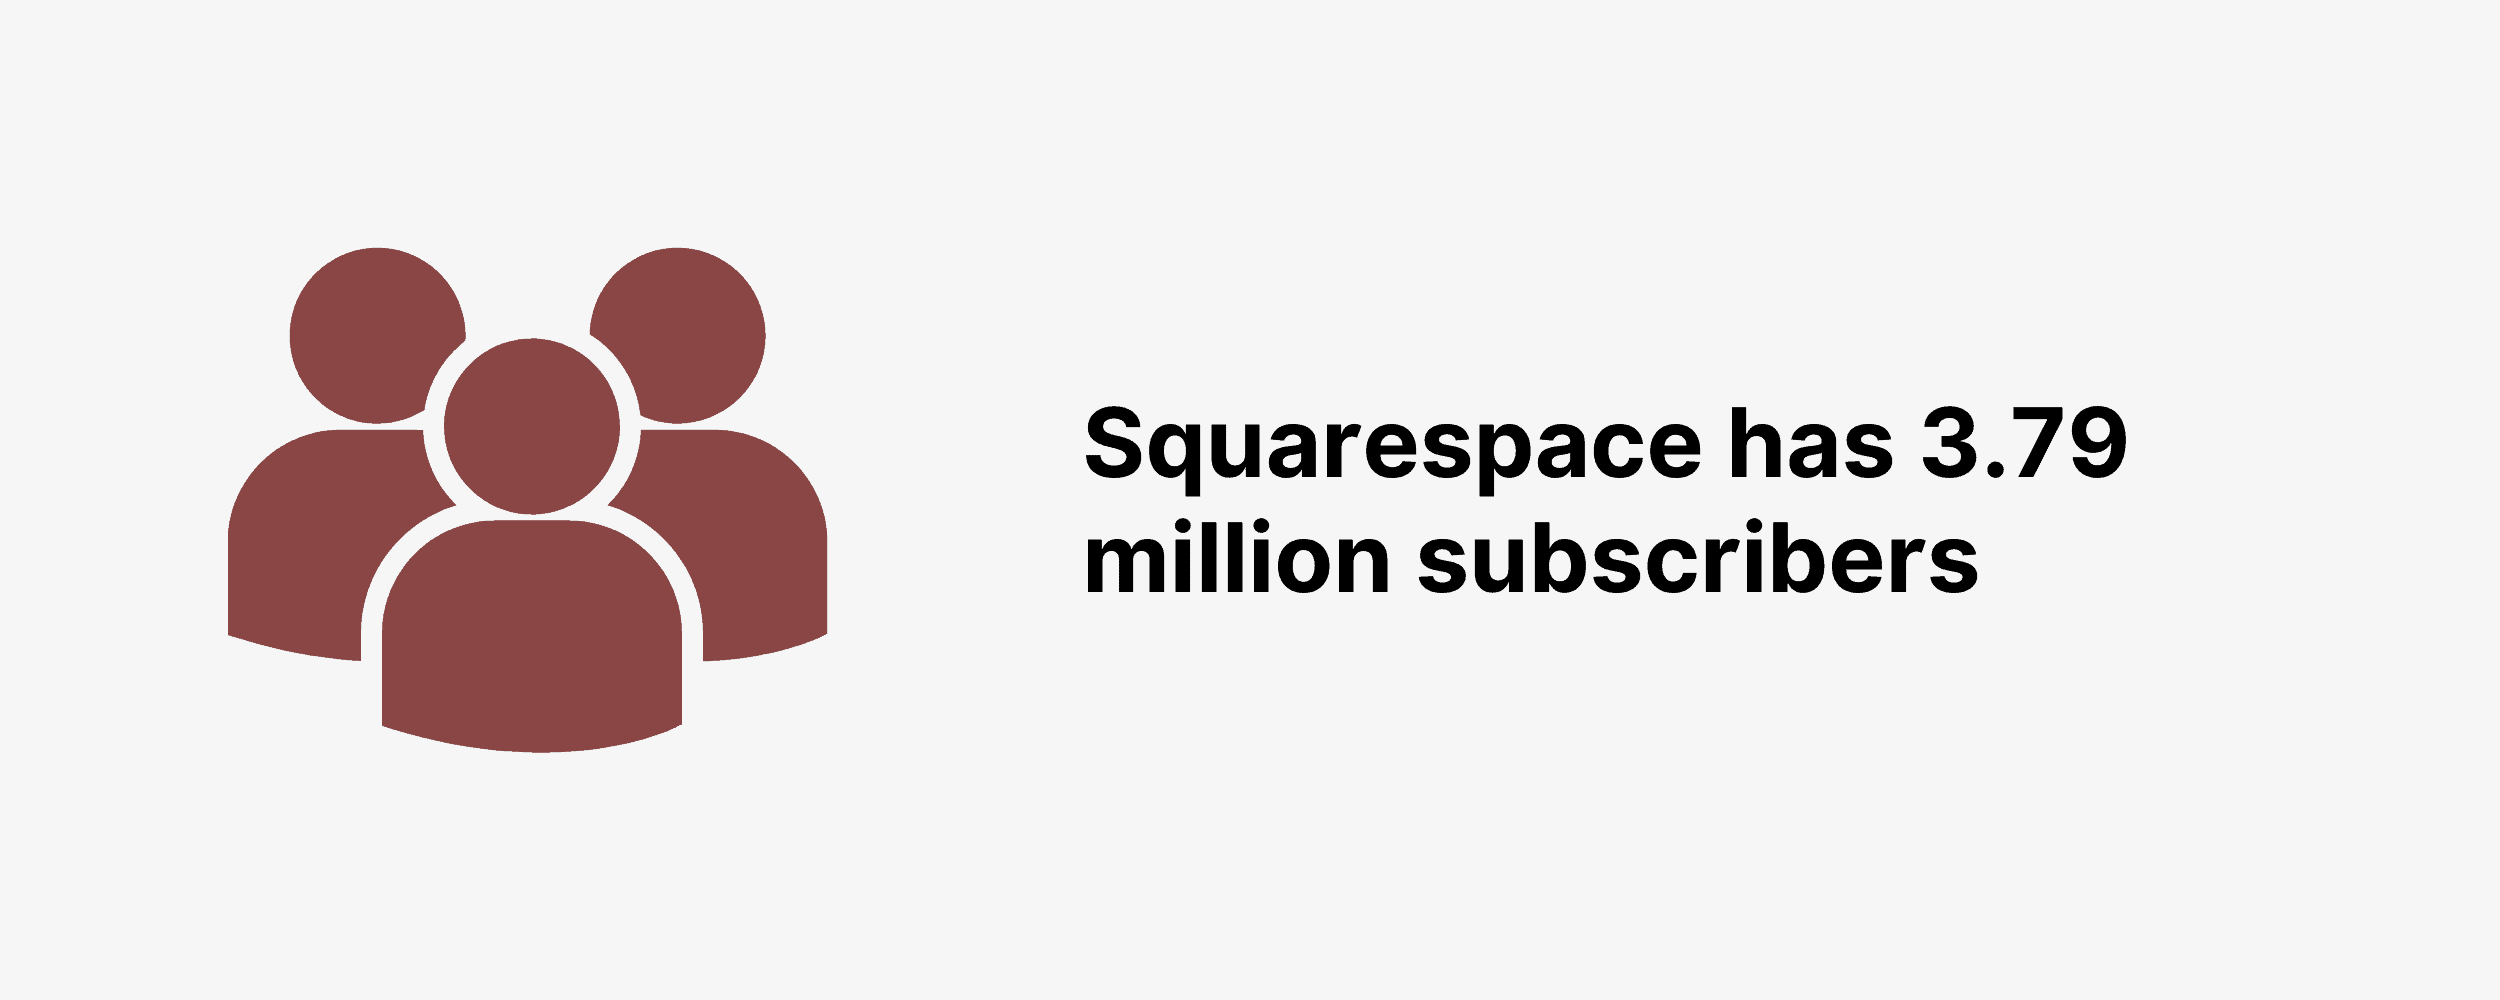 Squarespace has 3.79 million subscribers